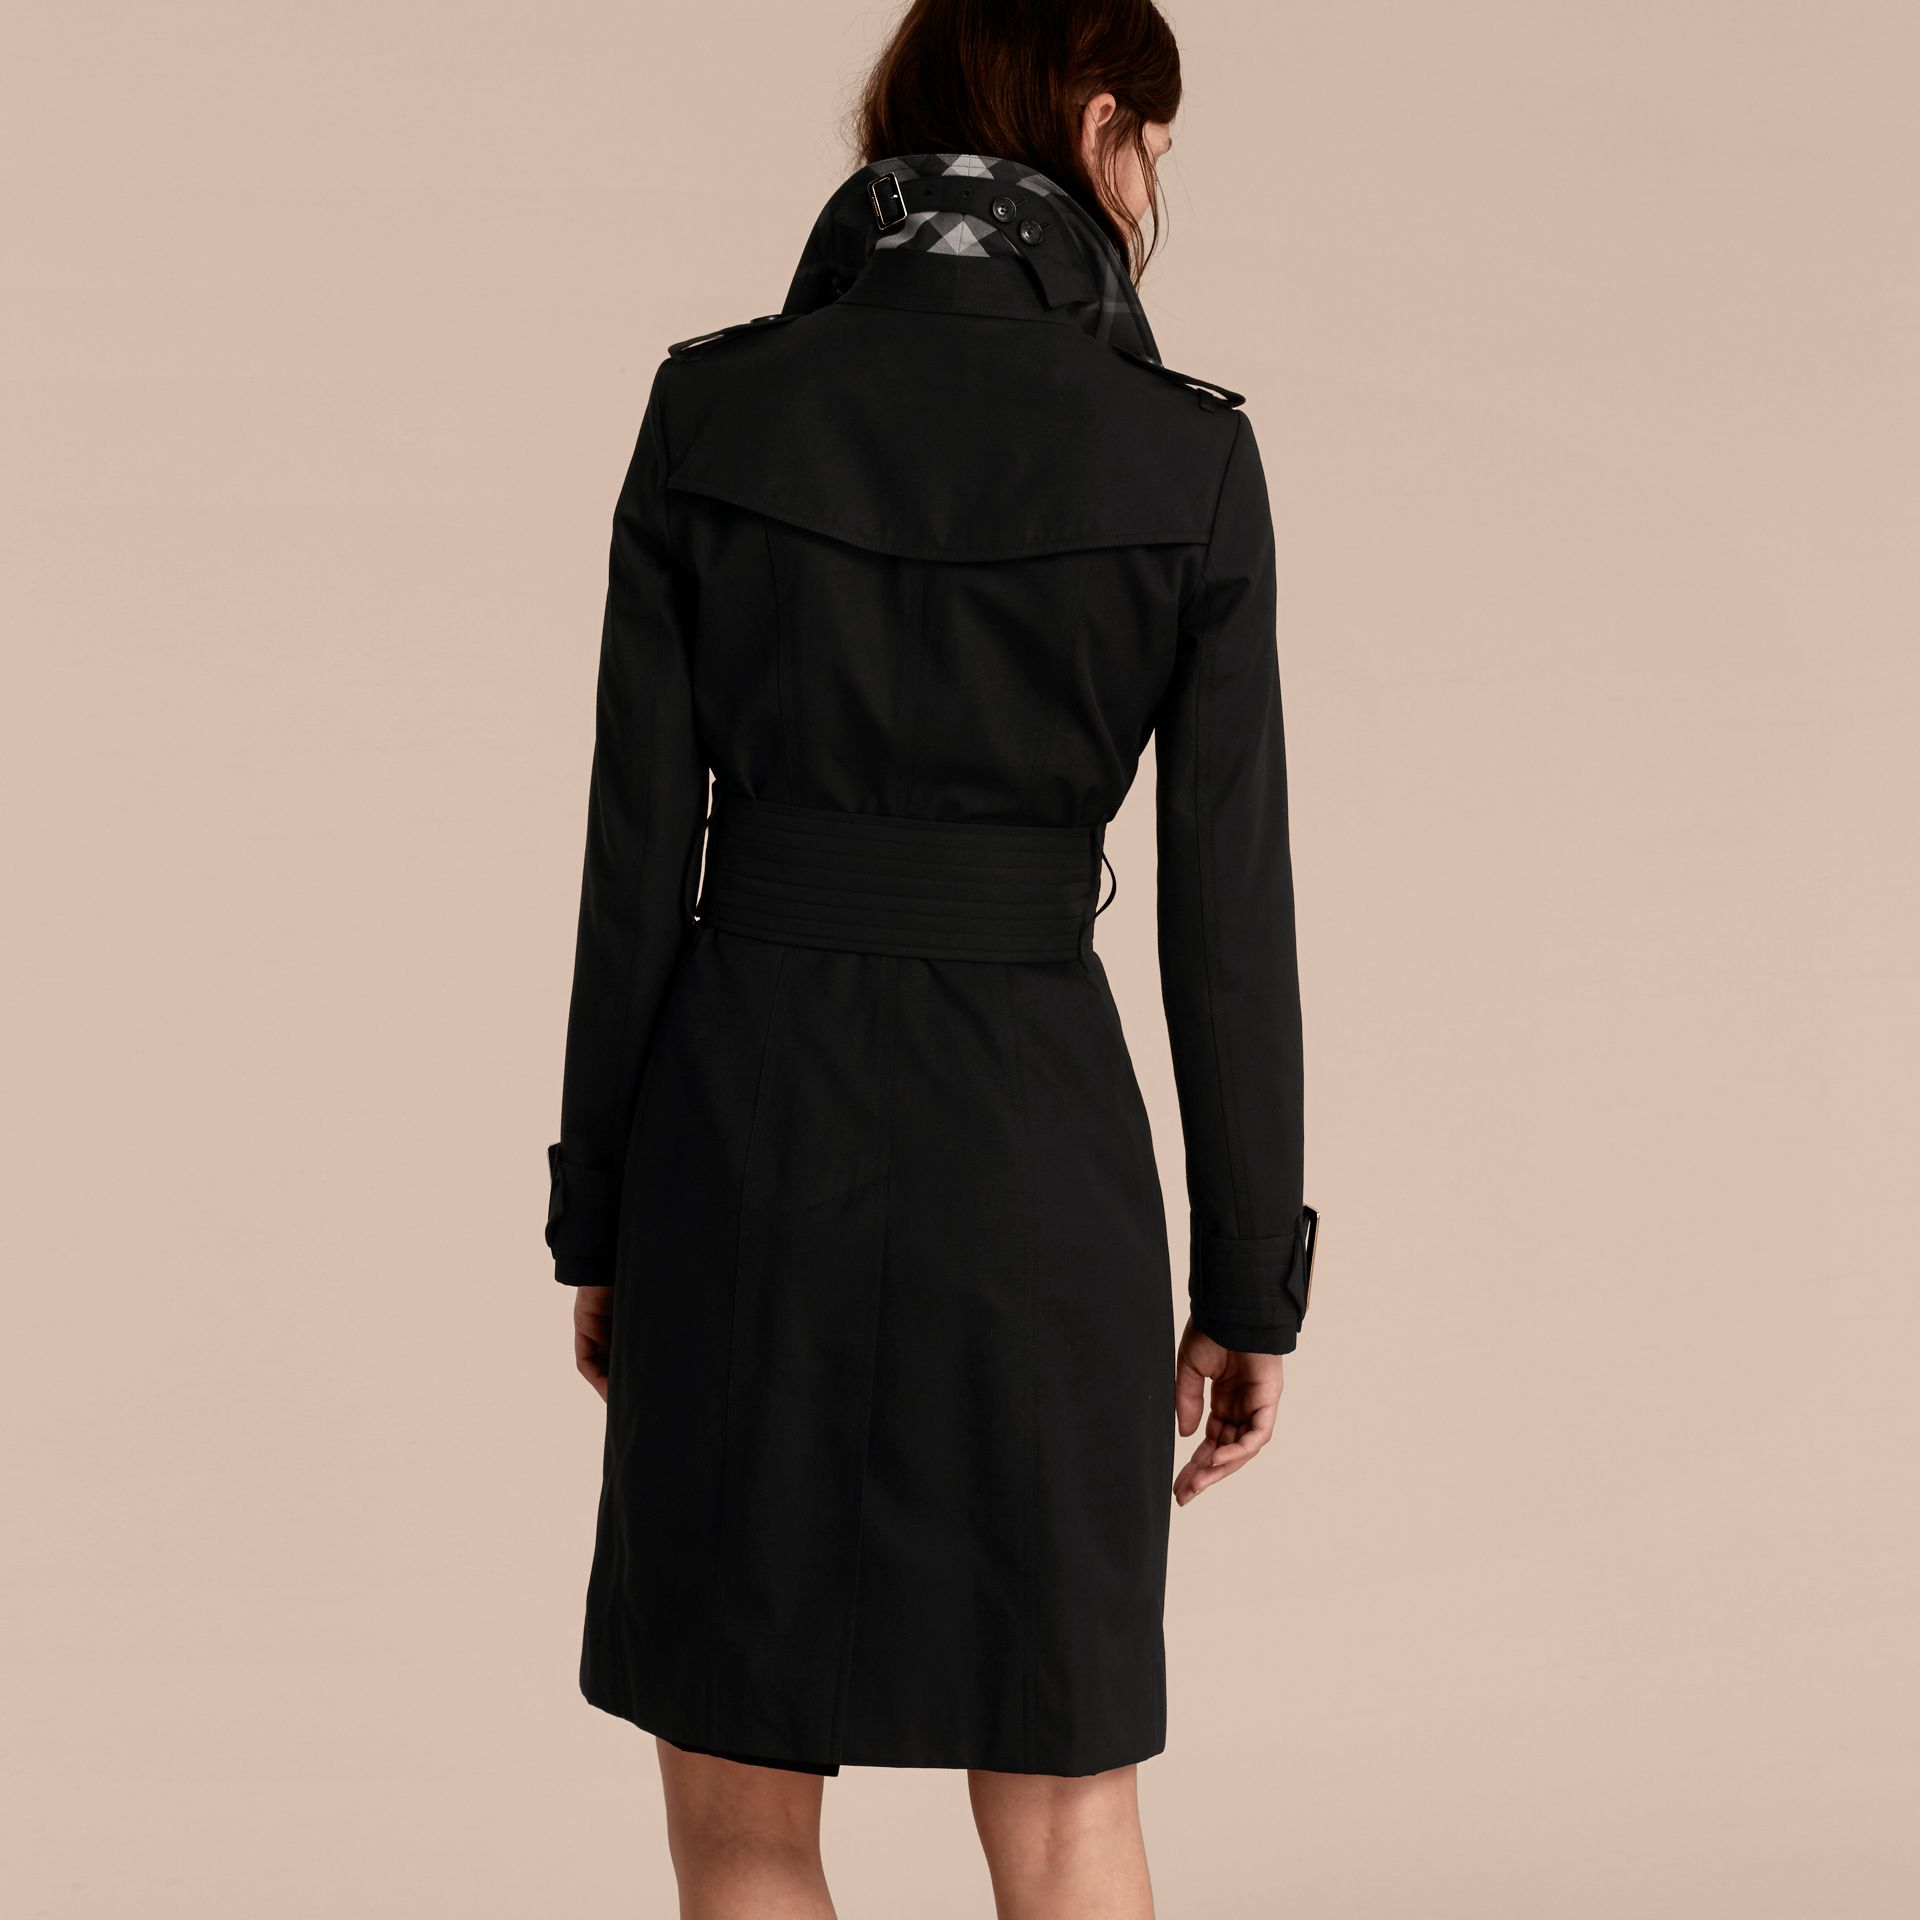 Black Cotton Gabardine Trench Coat with Oversize Buckles - gallery image 3